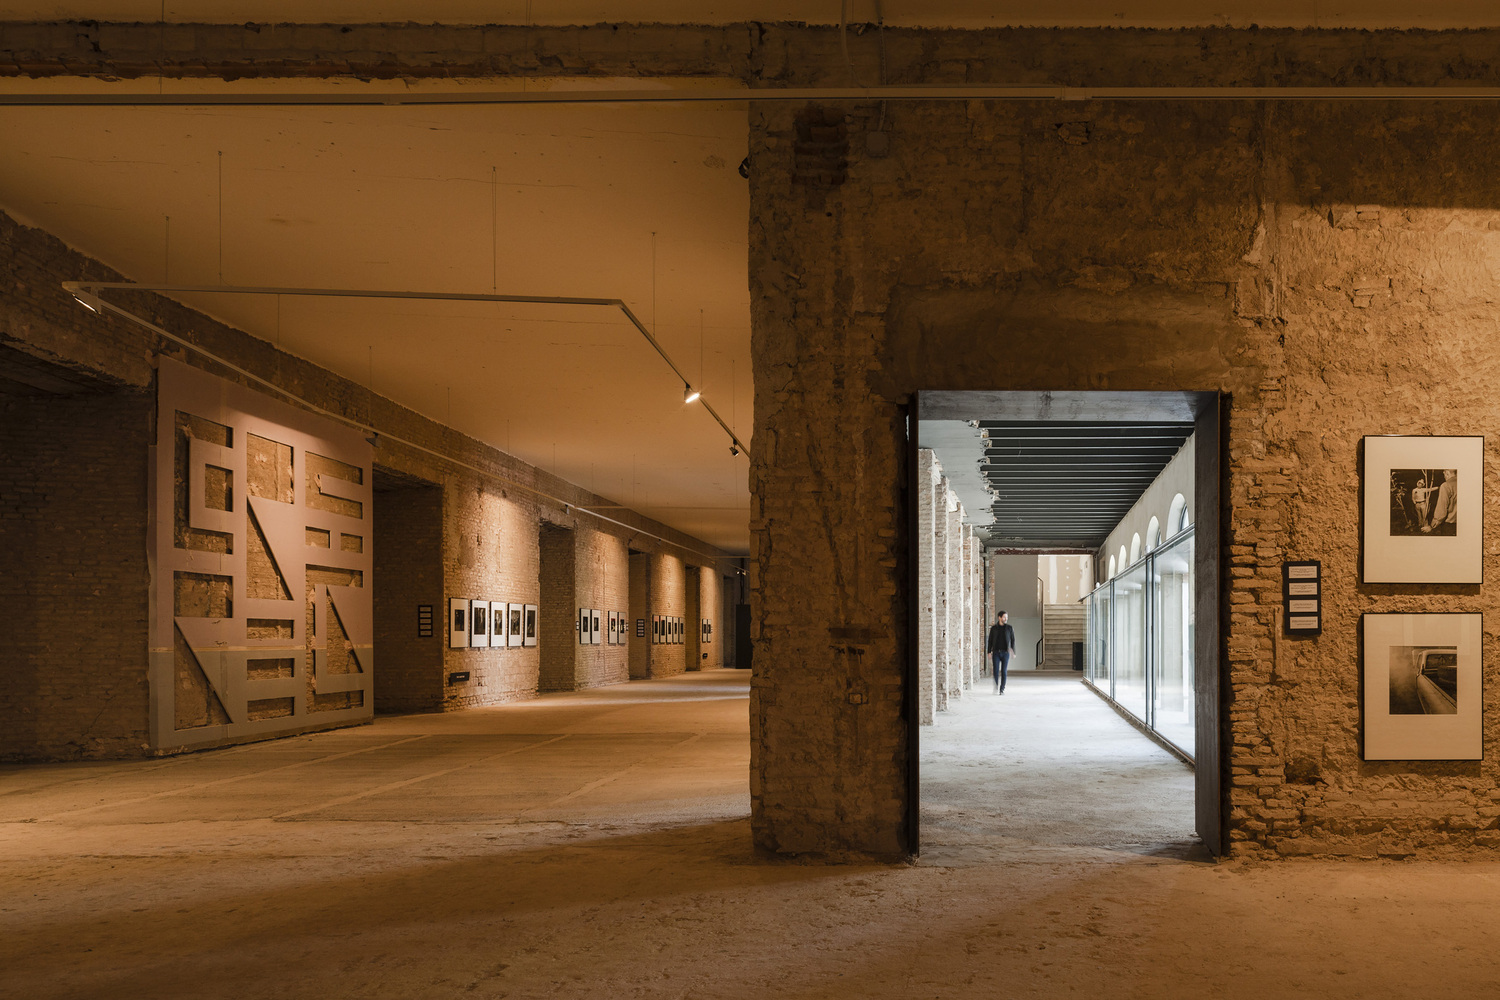 Rejuvenating life into some buildings in Spain: Adaptive reuse